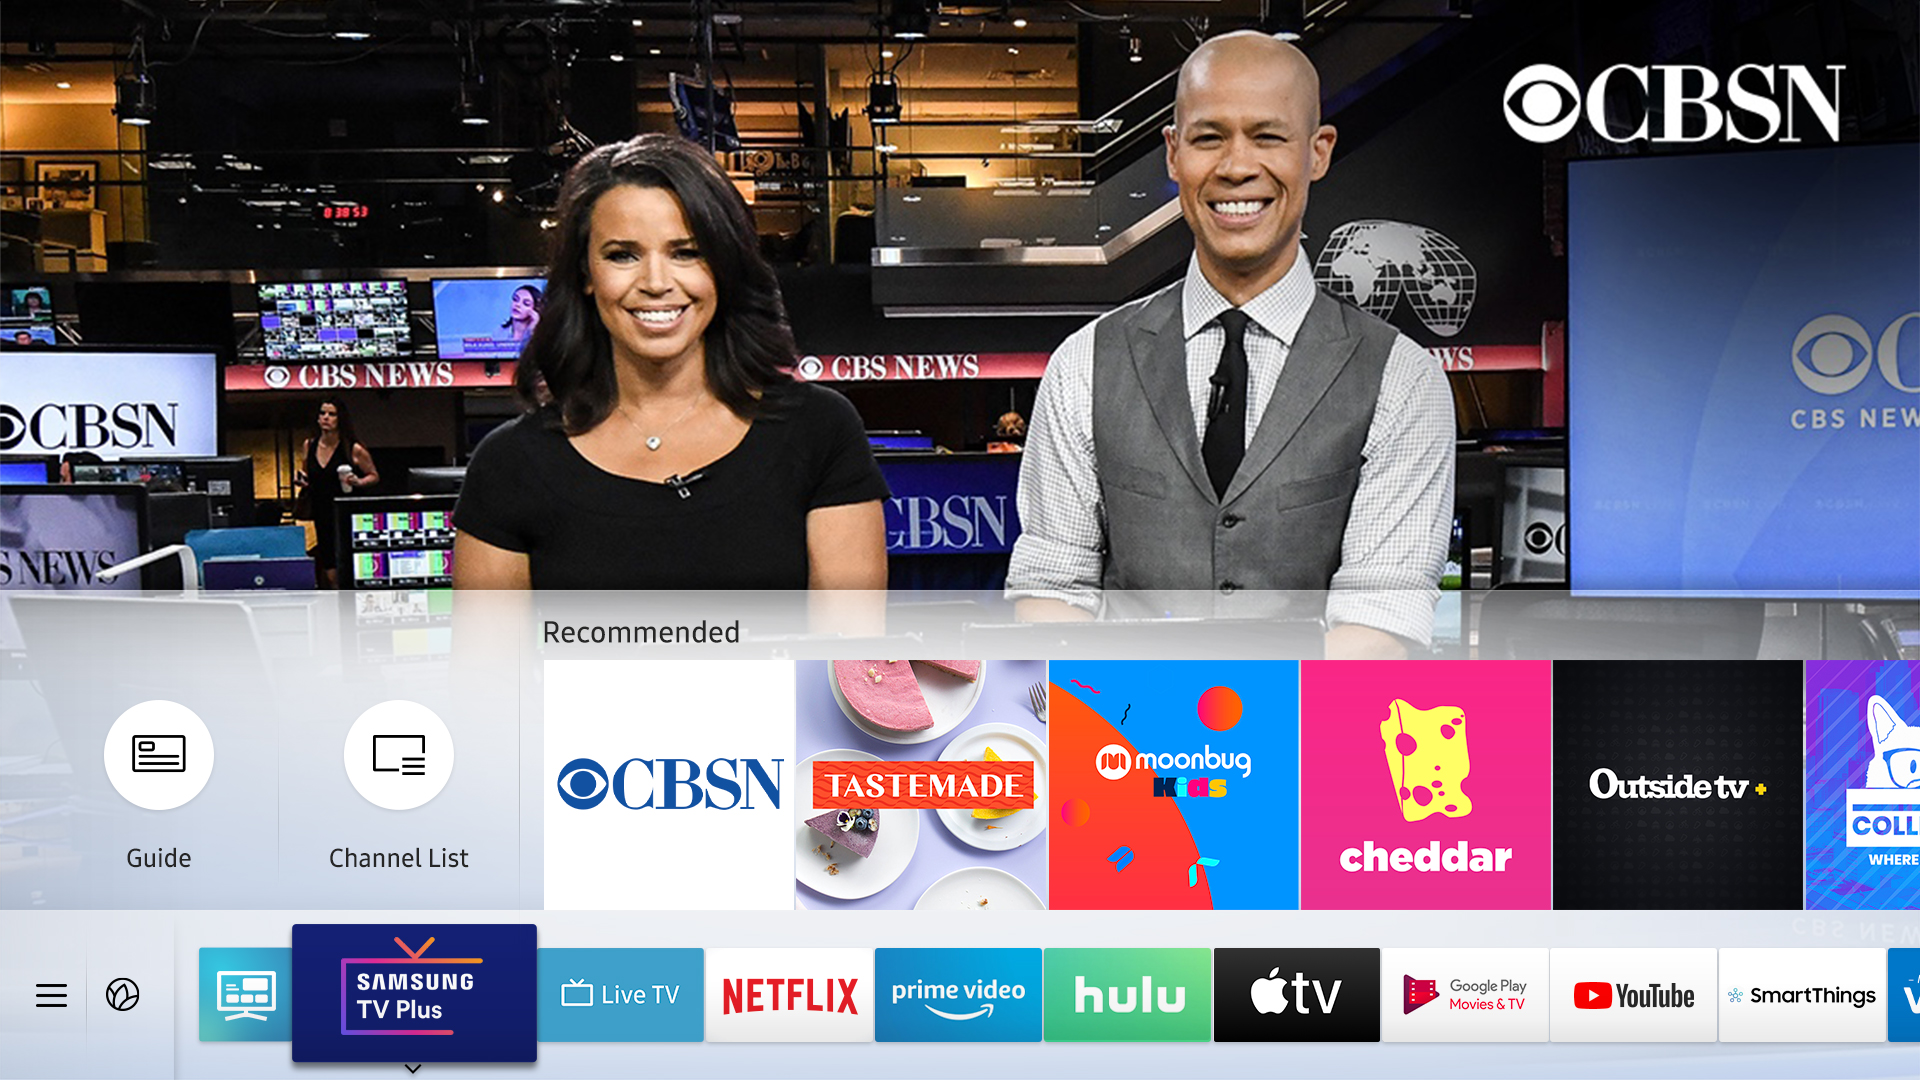 Cbsn Joins Over 70 Free Tv Channels On Samsung Tv Plus